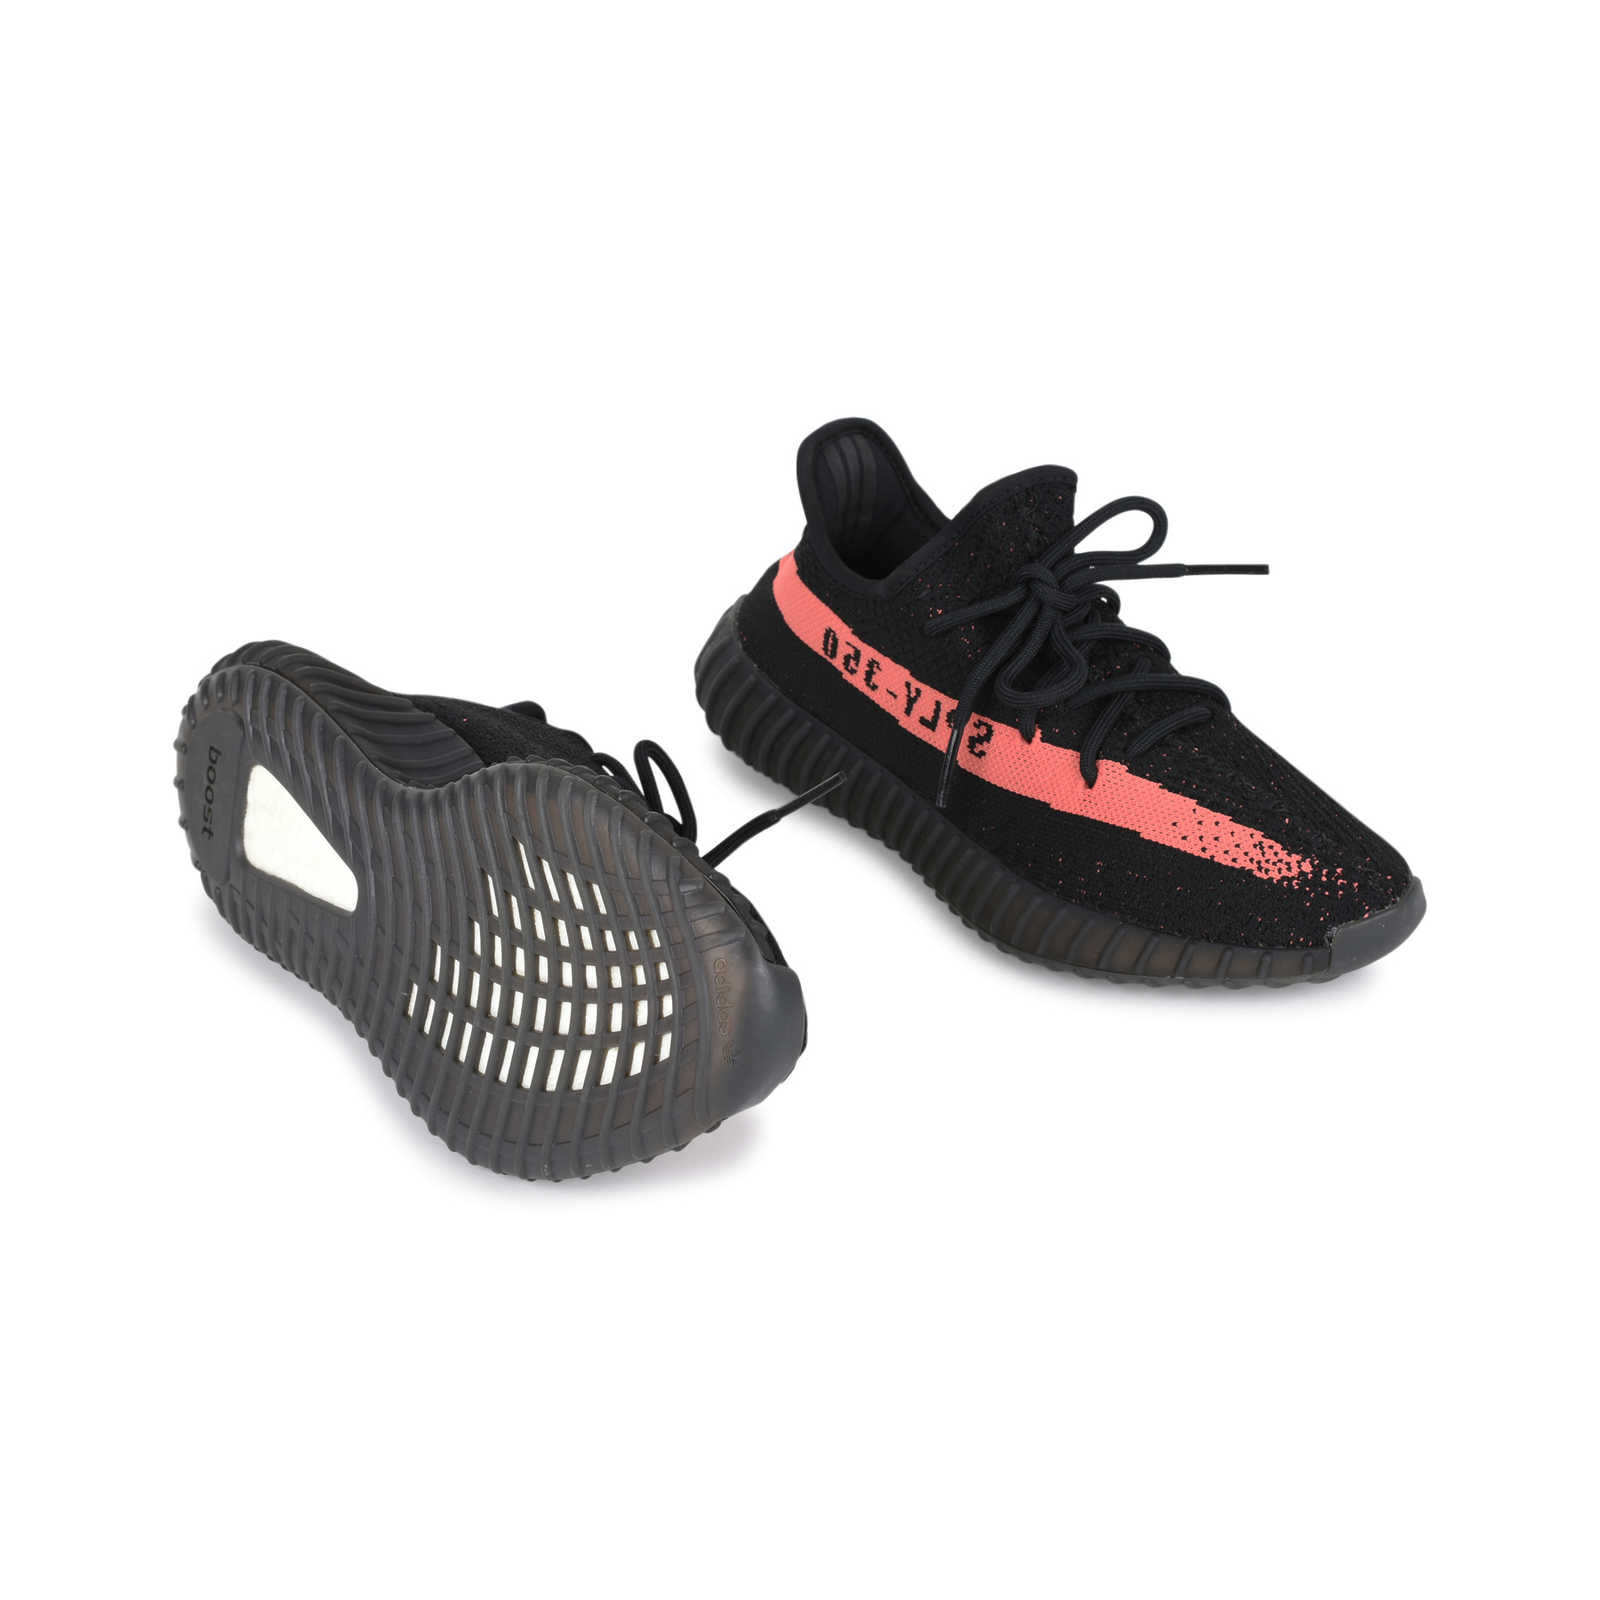 Authentic Second Hand Adidas Yeezys Yeezy Boost 350 V2